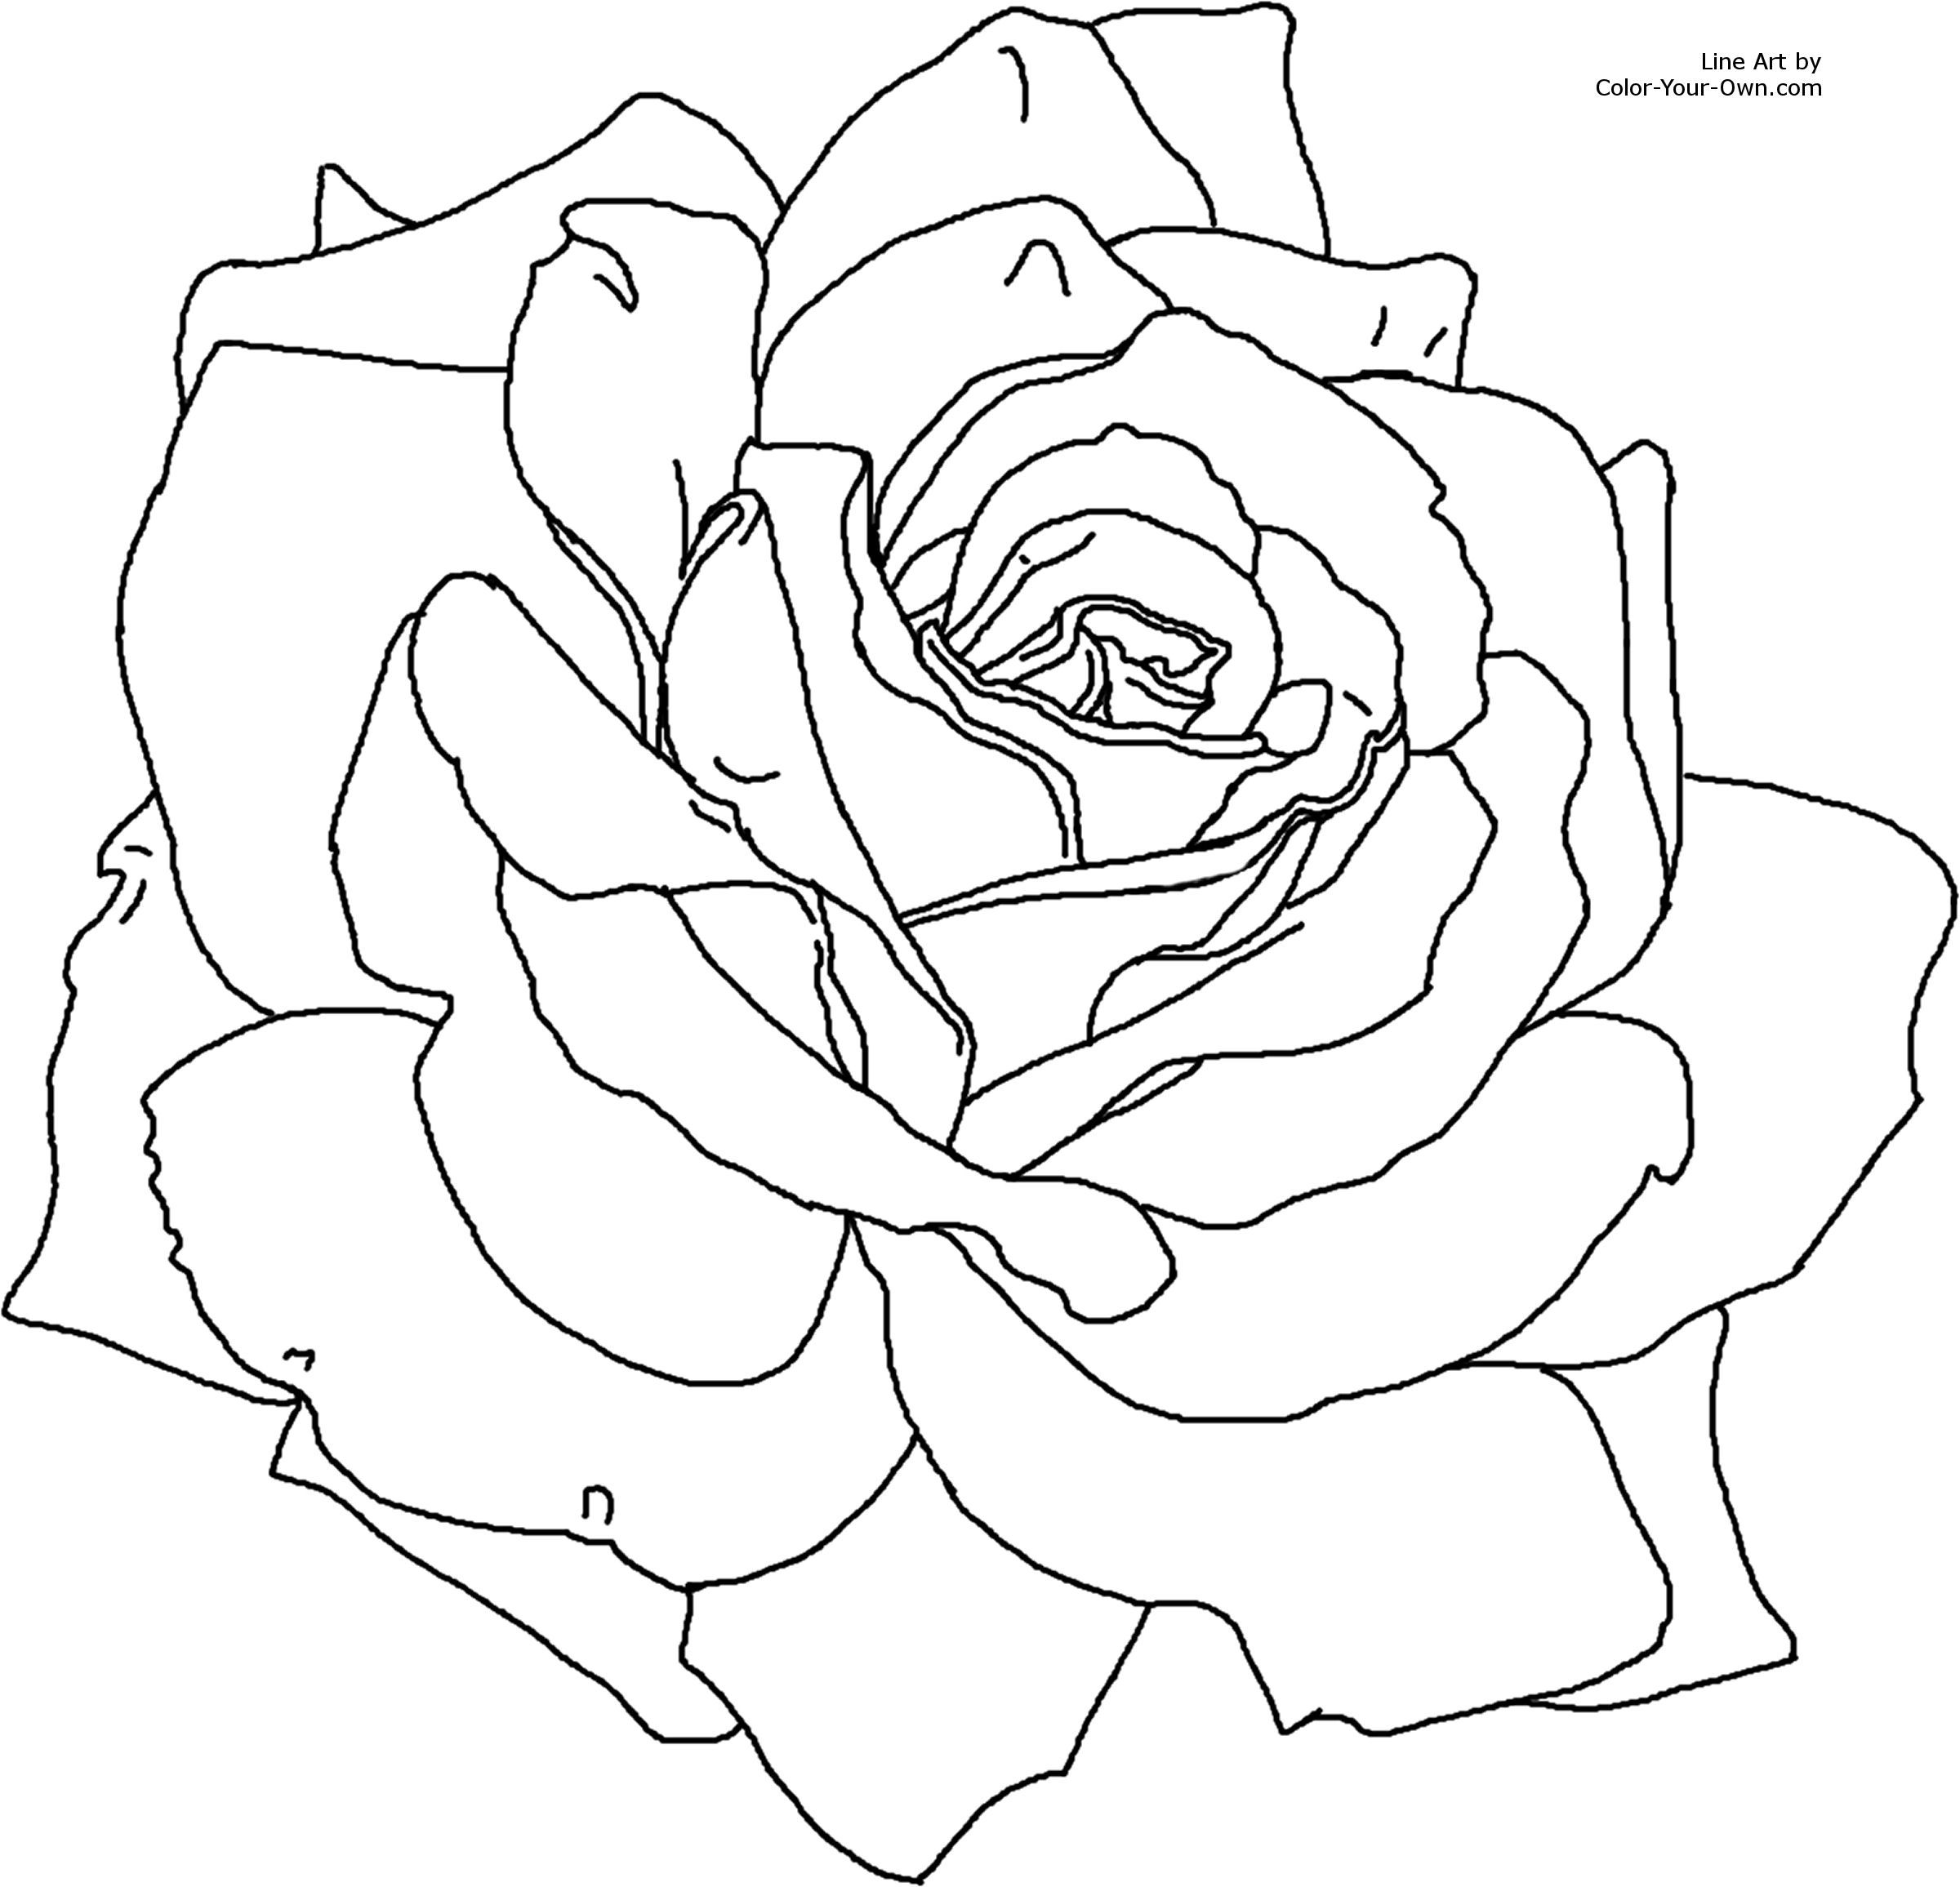 flower page printable coloring sheets for the 85 x 11 printable size click here - Coloring Book Pages For Adults 2